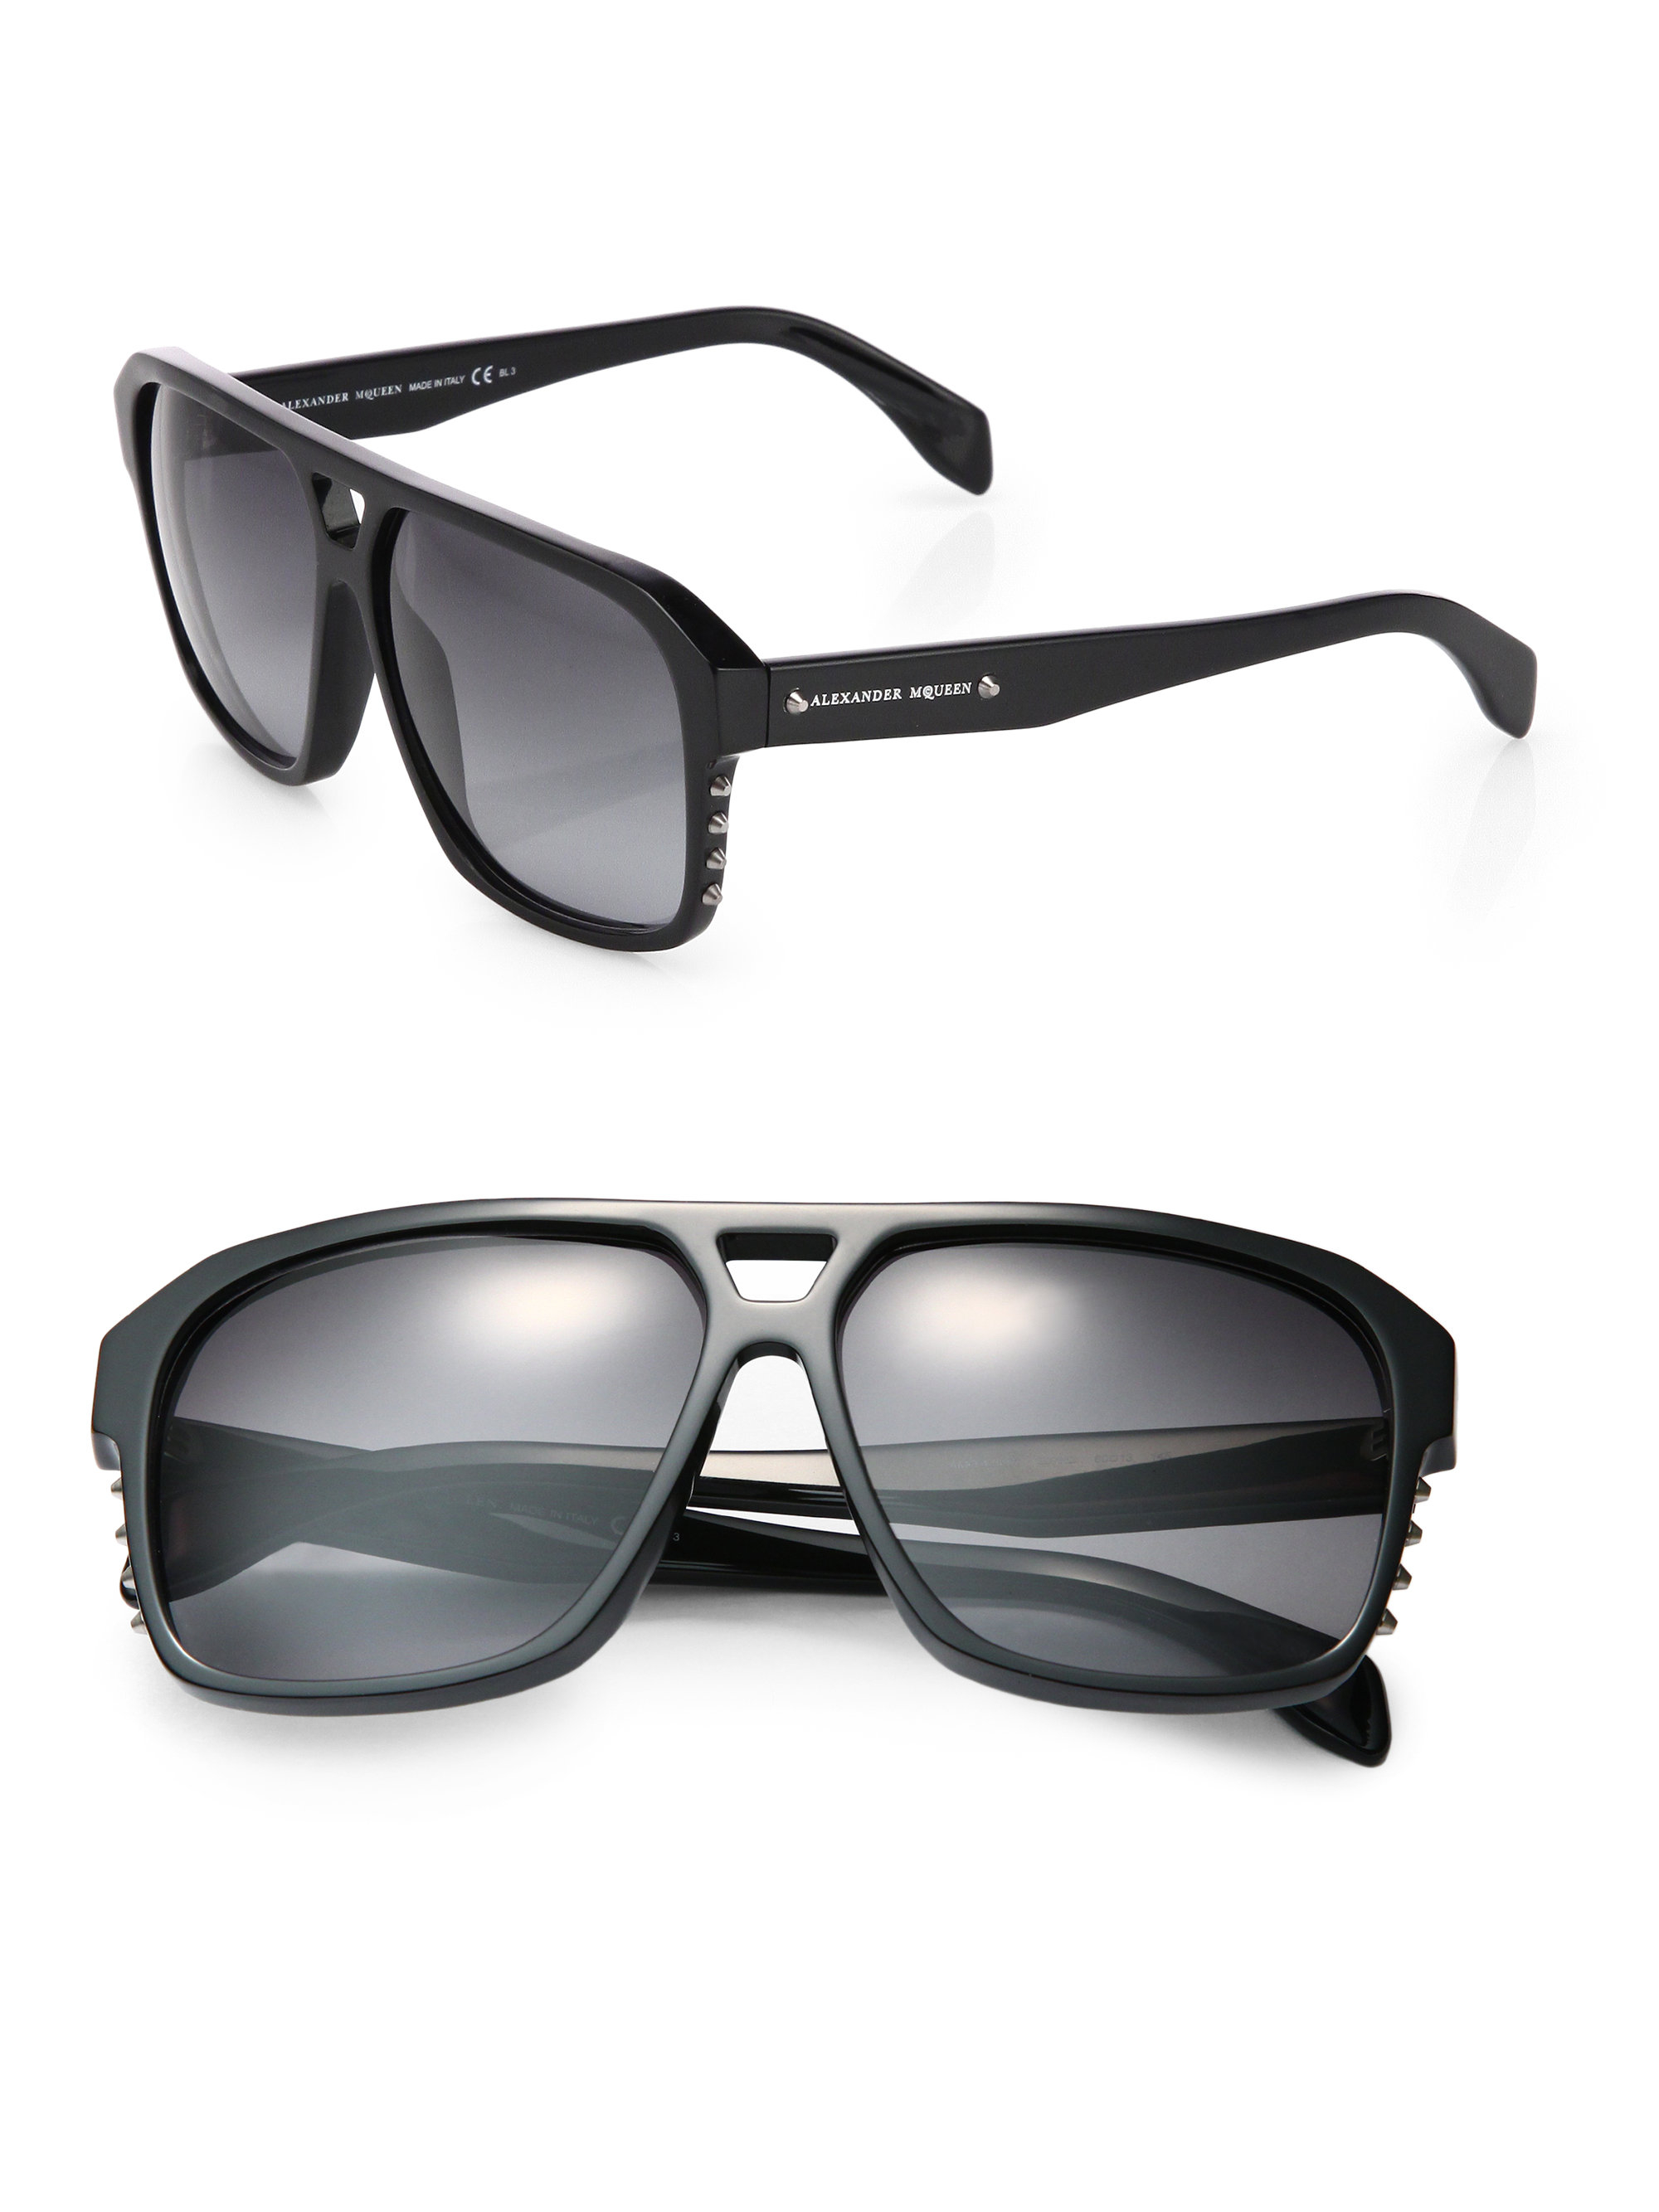 Lyst - Alexander Mcqueen Studded Acetate Sunglasses in Black